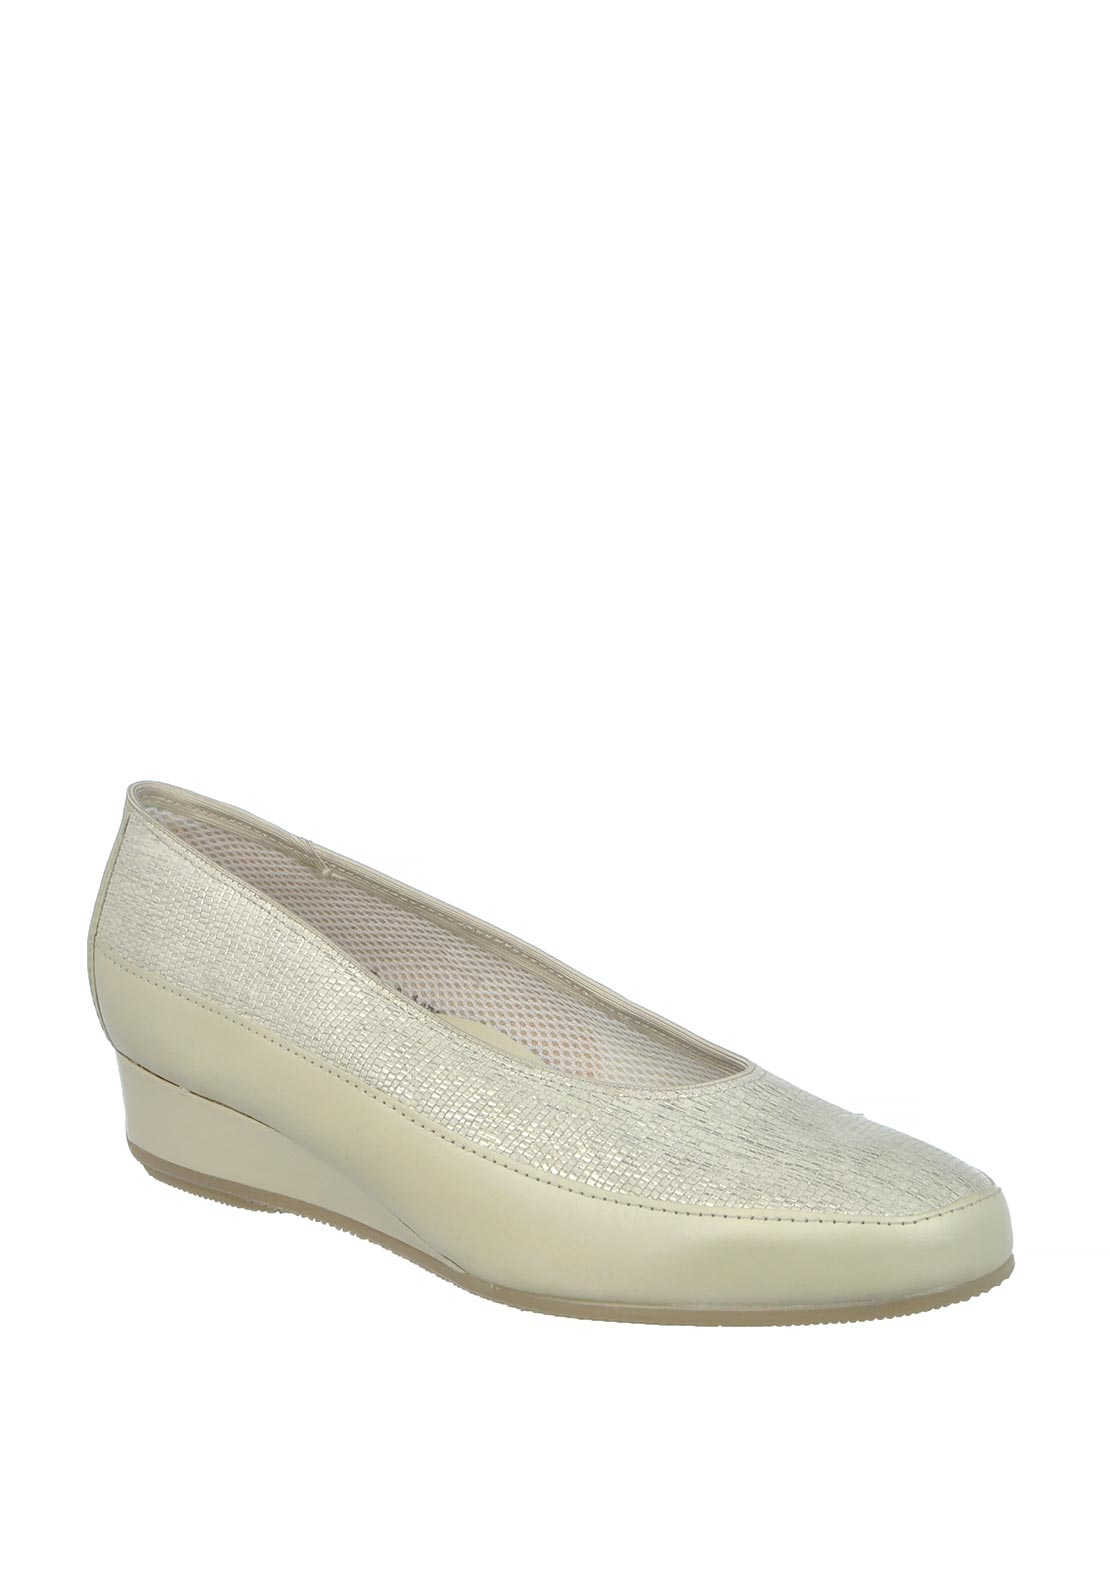 Ara Reptile Print Slip on Wedged Leather Shoes, Silver and Beige